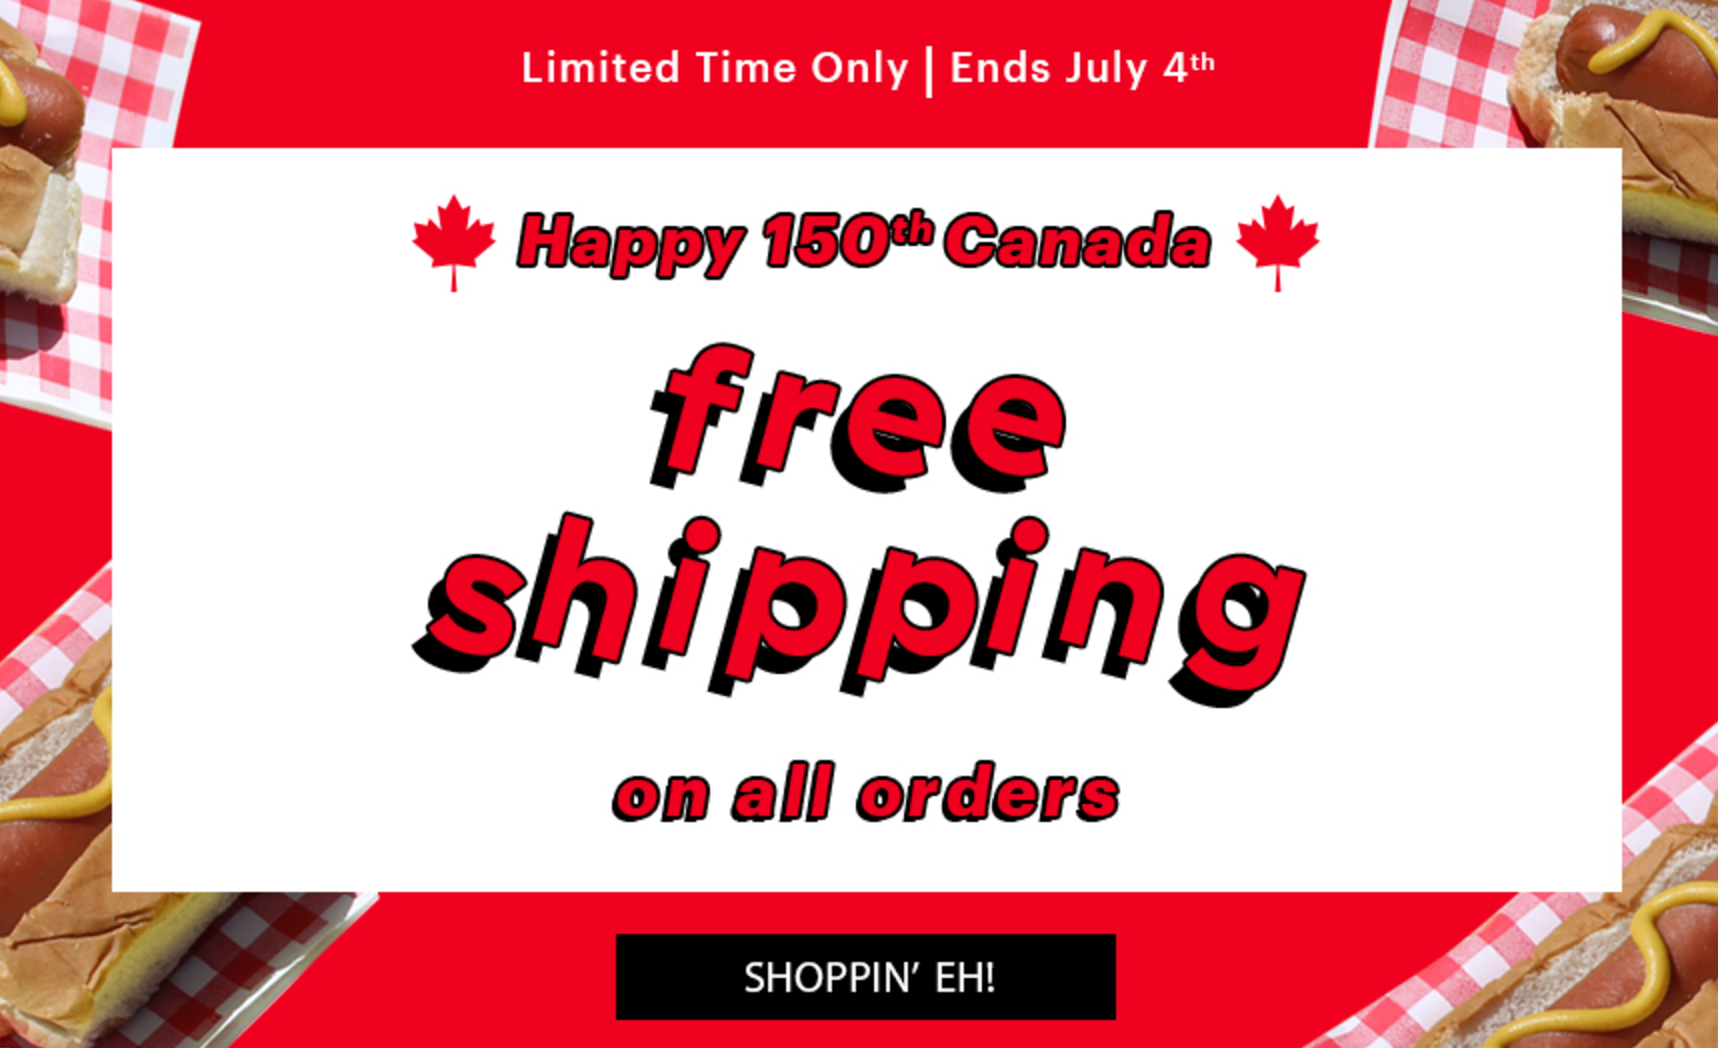 Next day flyers coupon code free shipping